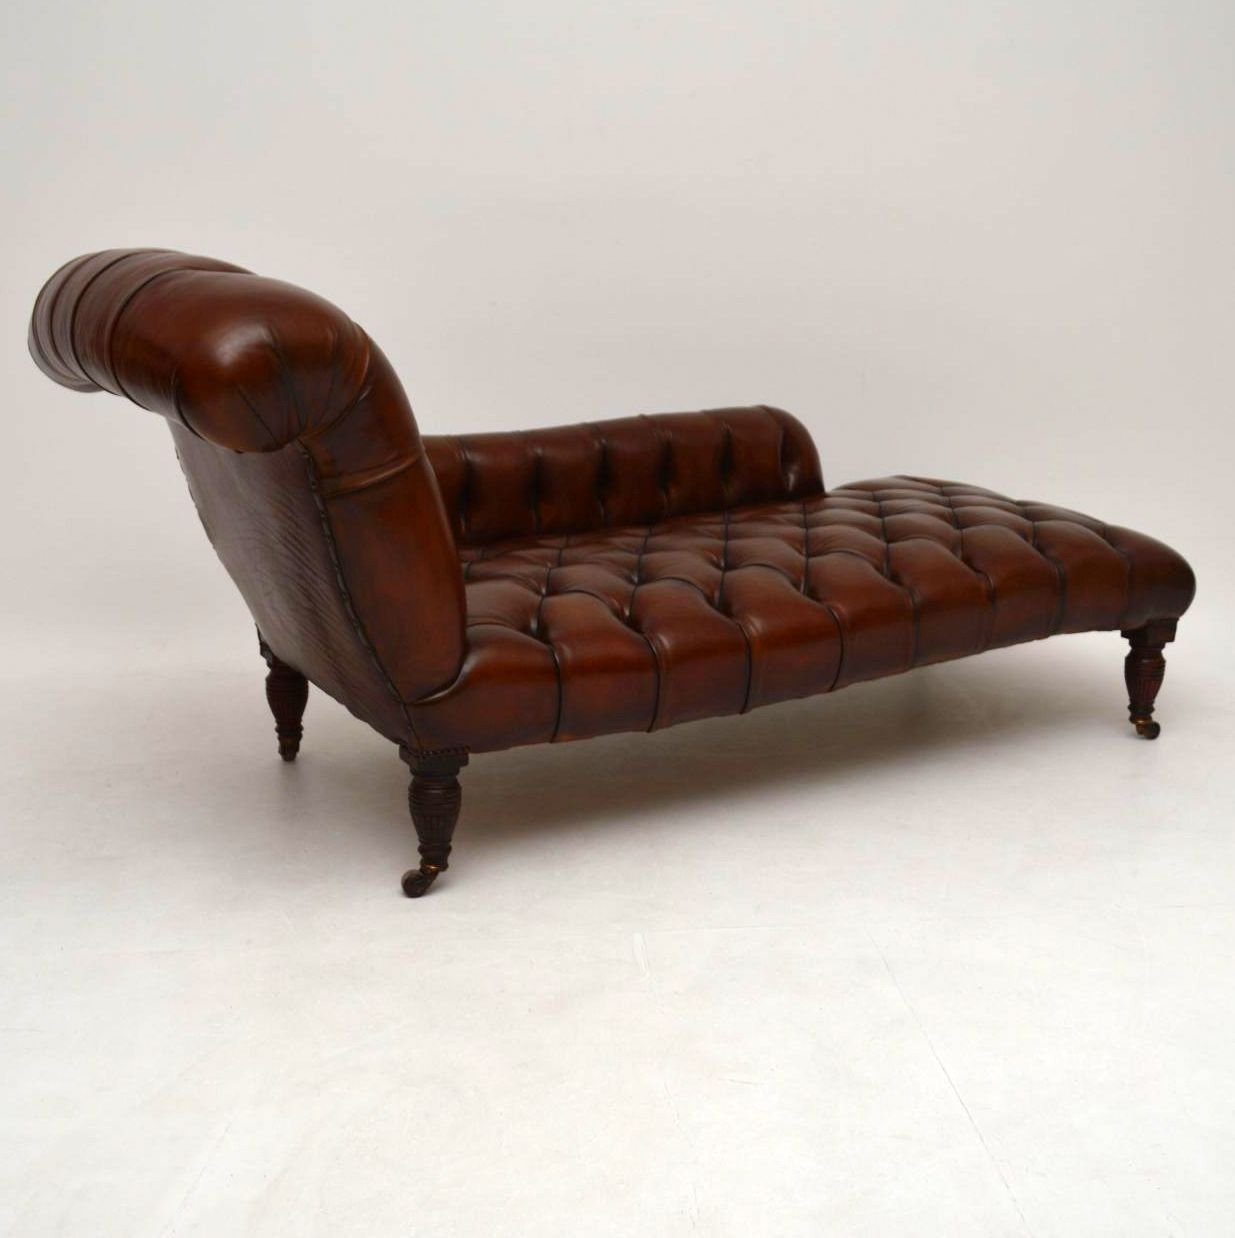 Antique victorian deep buttoned leather chaise lounge for Chaise furniture for sale